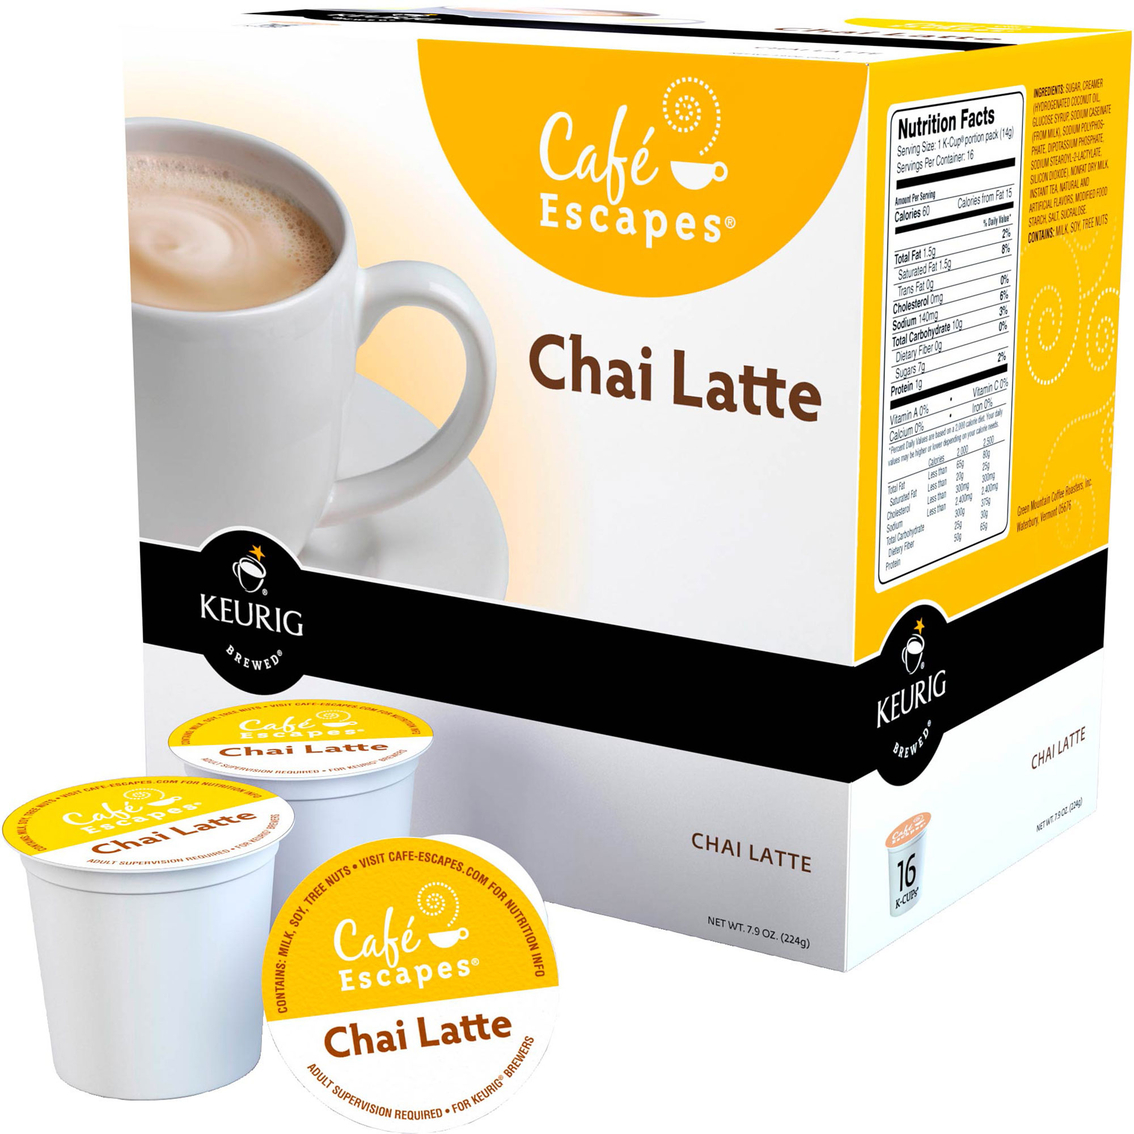 Cafe Escapes Chai Latte Keurig K-cup